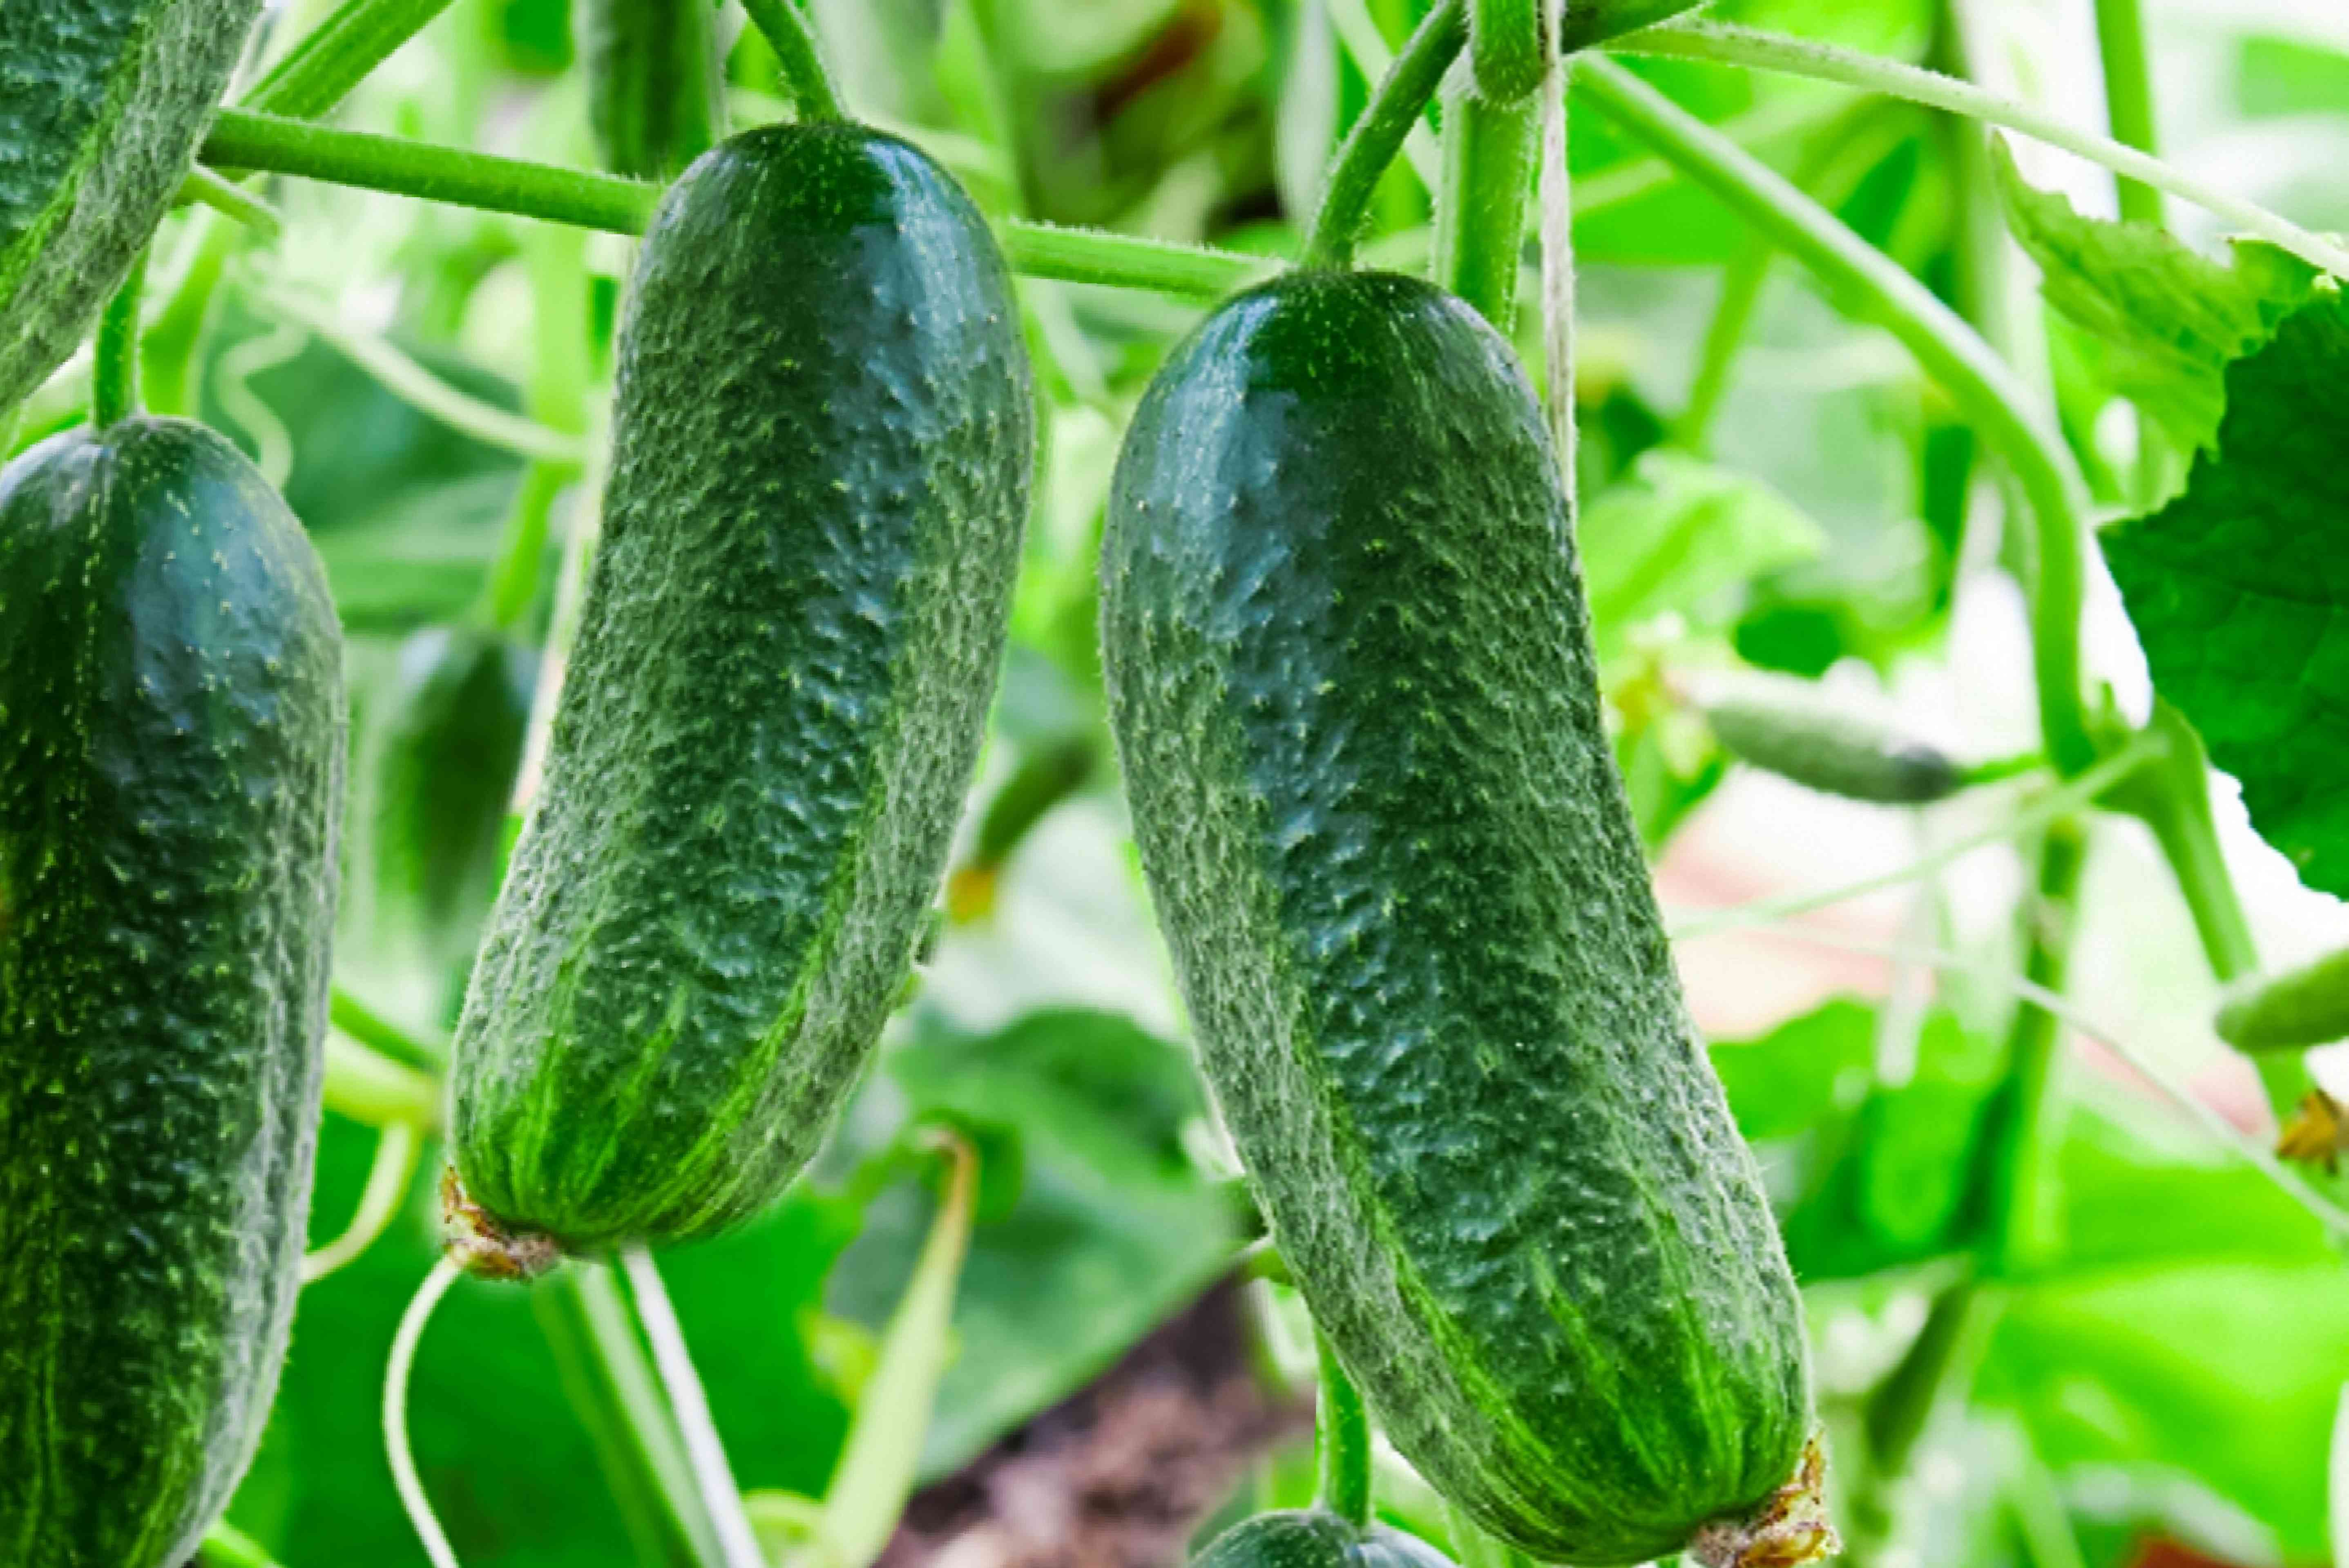 cucumbers ready for harvest